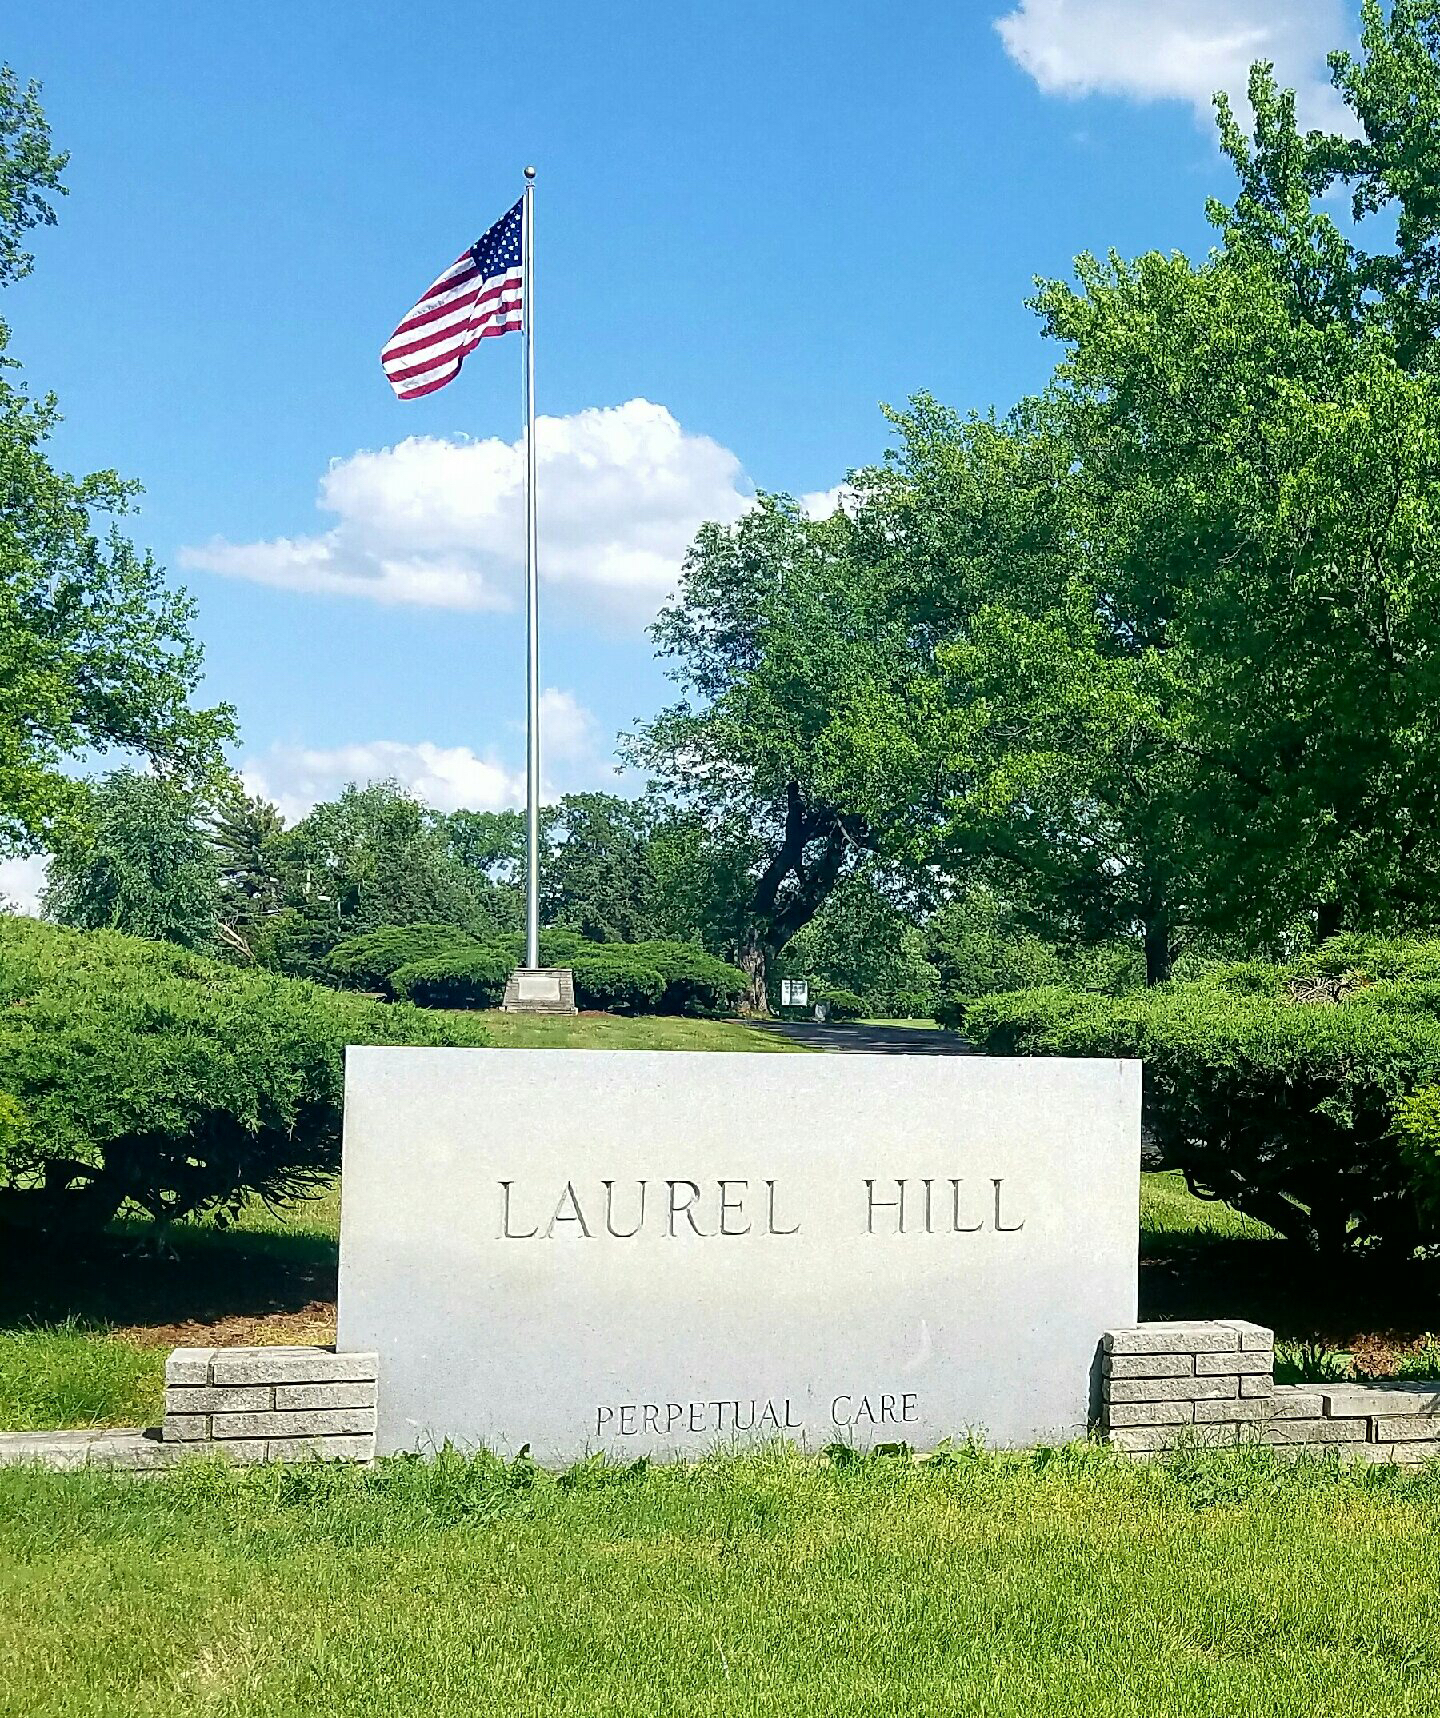 Laurel Hill Memorial Gardens